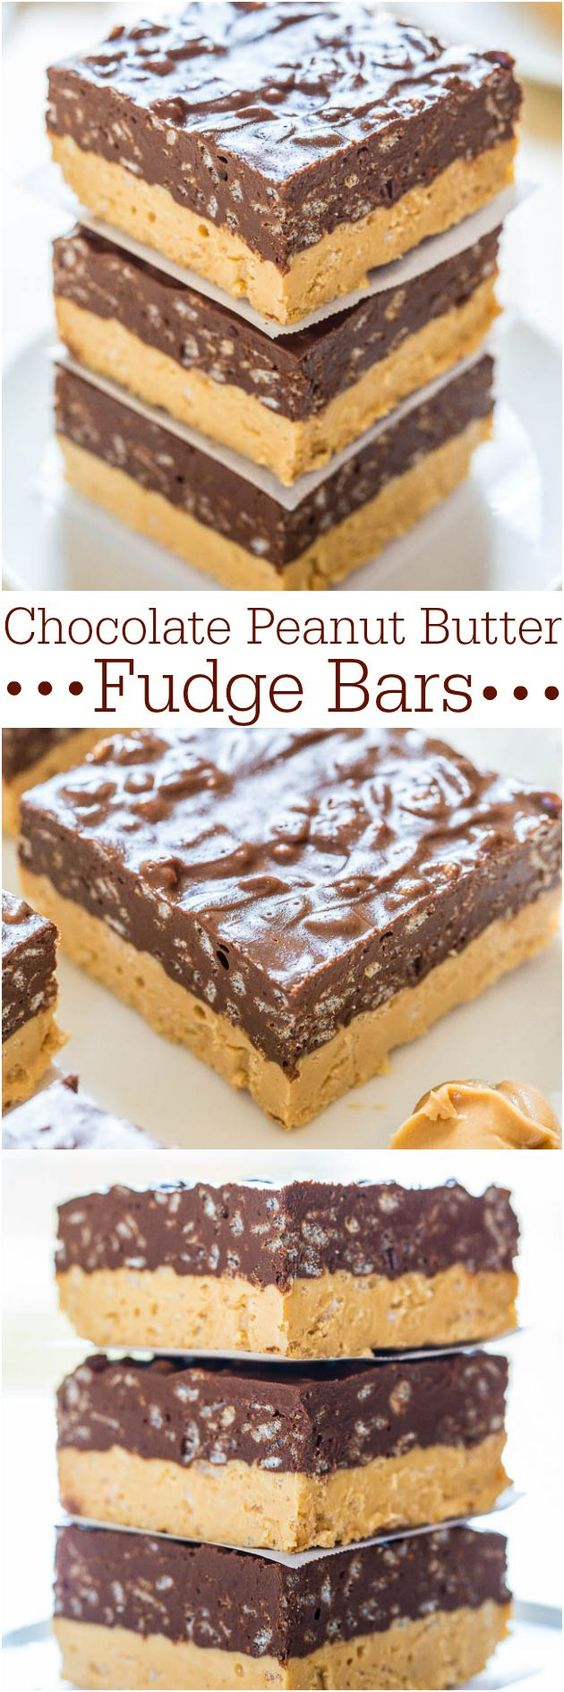 No-Bake Chocolate Peanut Butter Fudge Bars Dessert Recipe via Averie Cooks - Make these easy, no-bake bars! Chocolate + PB is sooo irresistible!! #dessertbars #cookiebars #barsrecipes #dessertforacrowd #partydesserts #christmasdesserts #holidaydesserts #onepandesserts